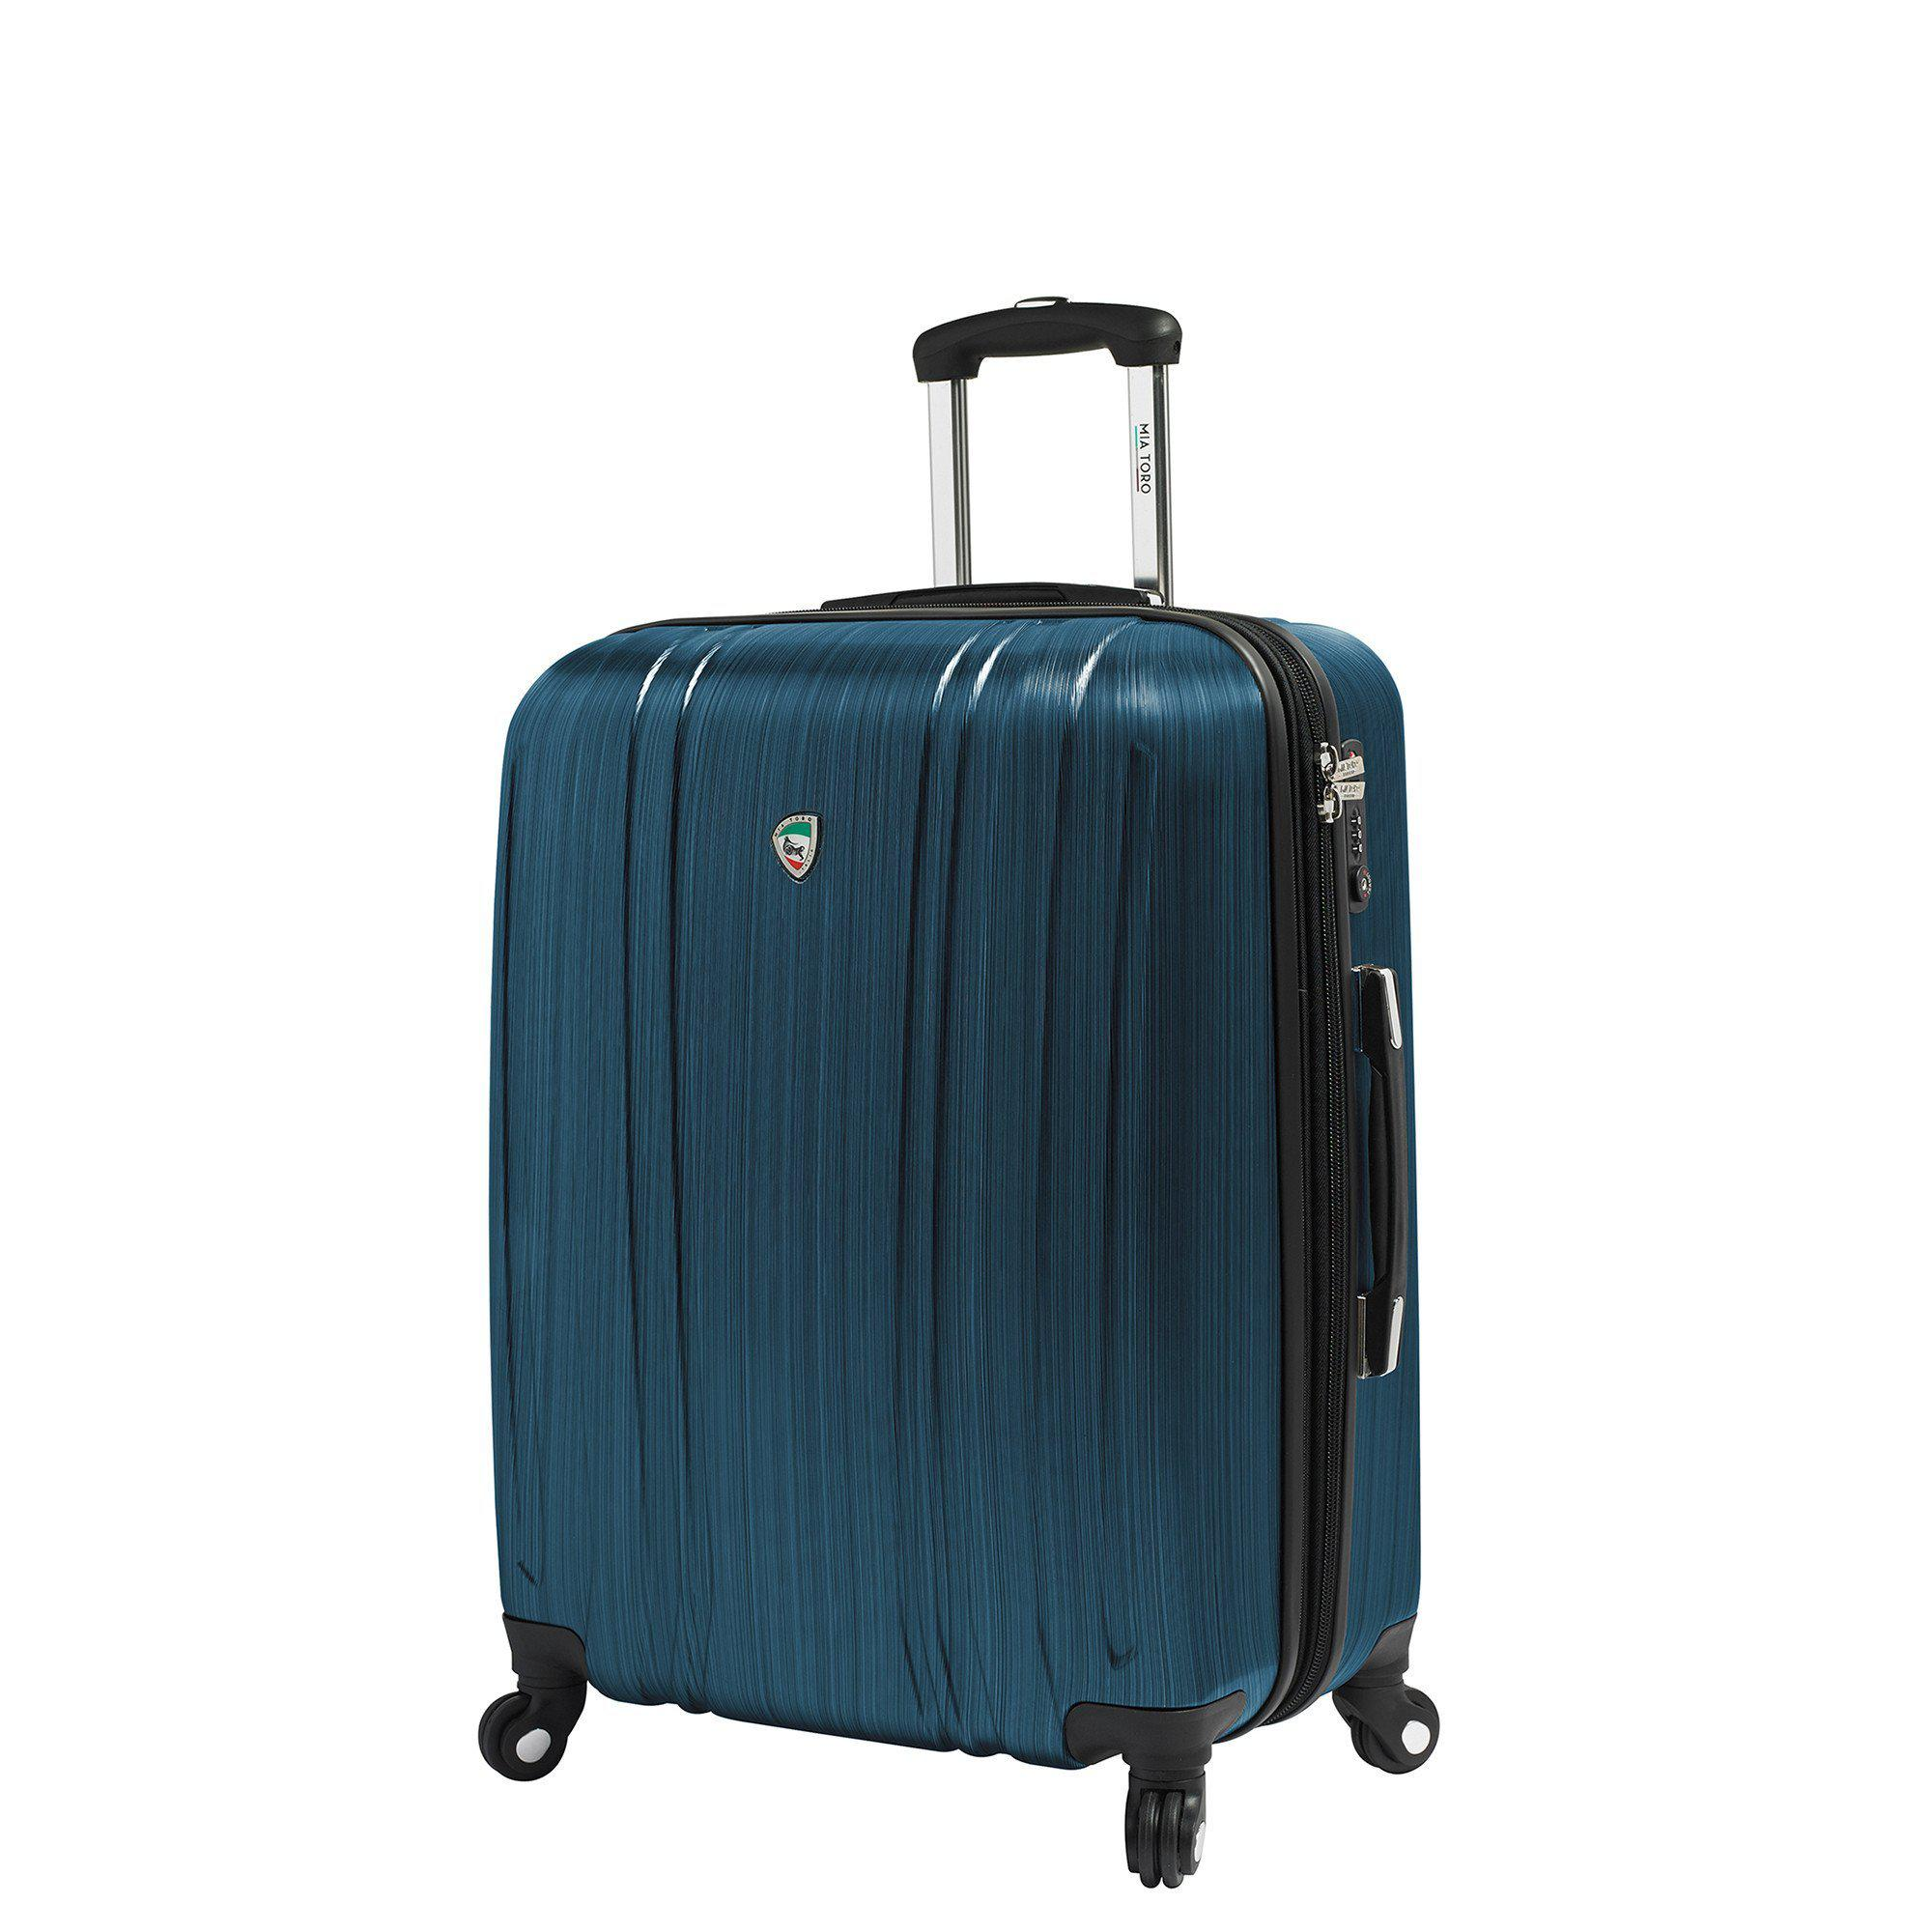 Acciaio Abrased Steel Hardside Spinner Carry On Luggage